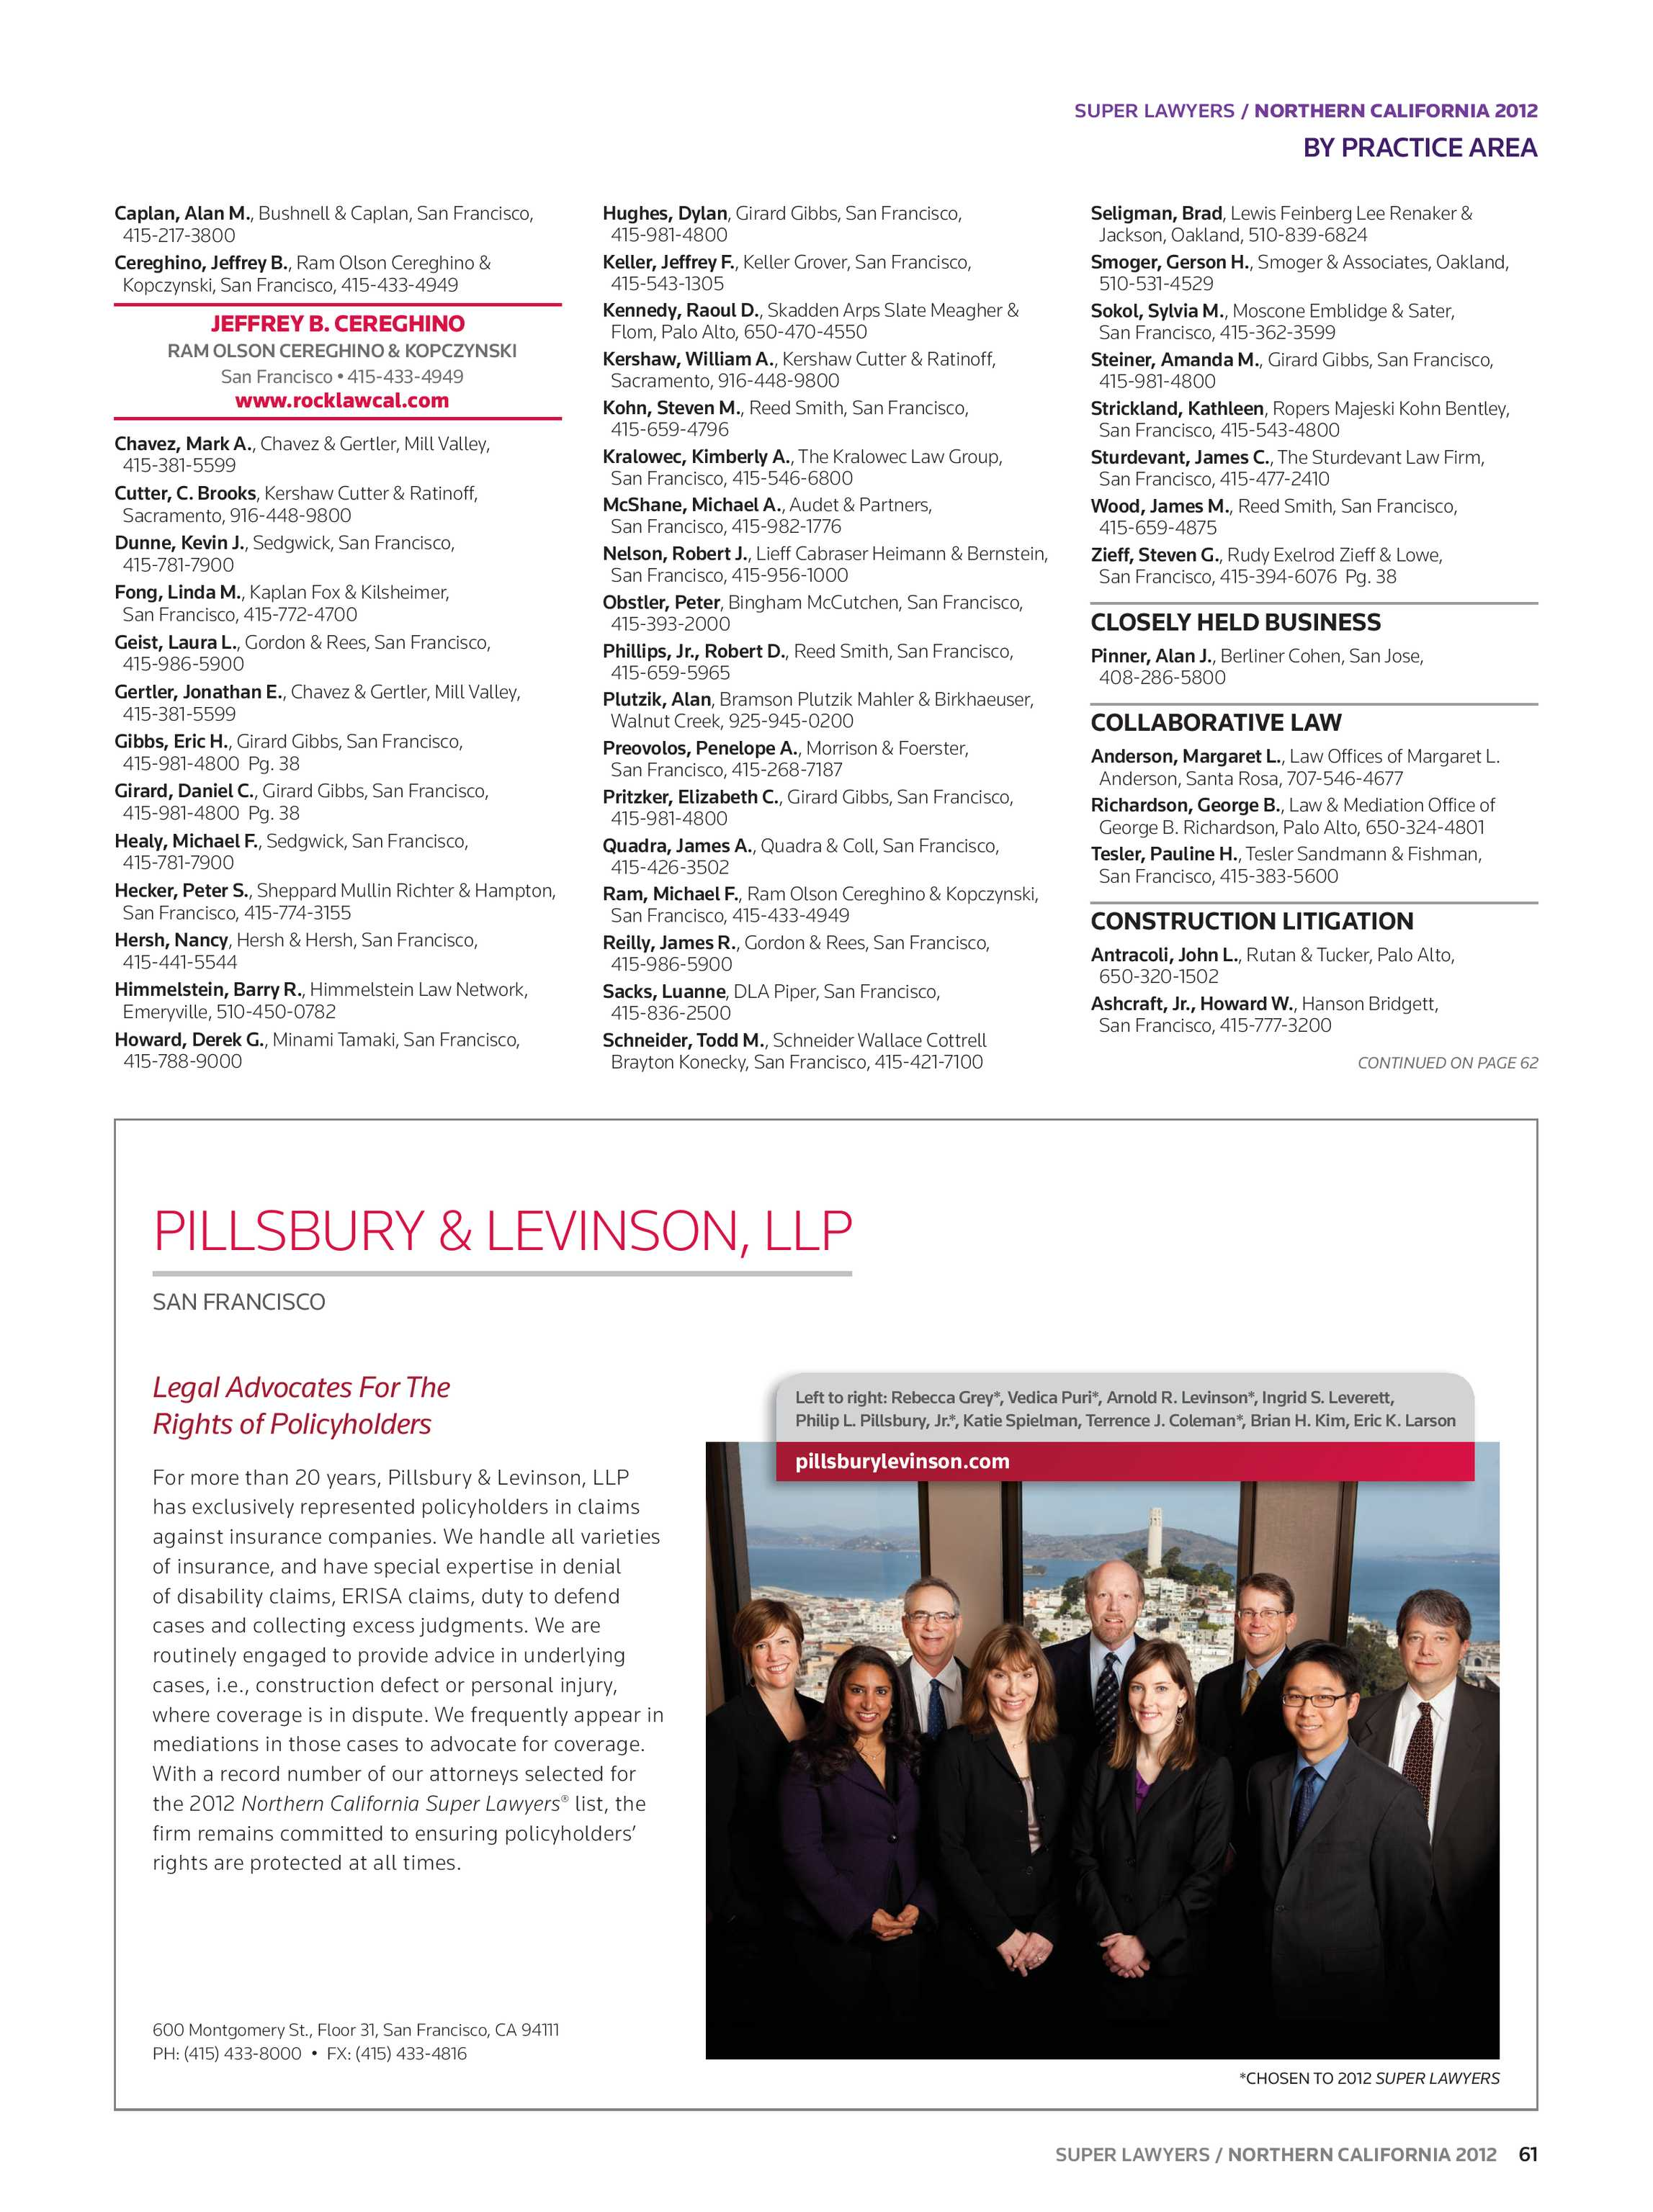 Super Lawyers - Northern California 2012 - page 61